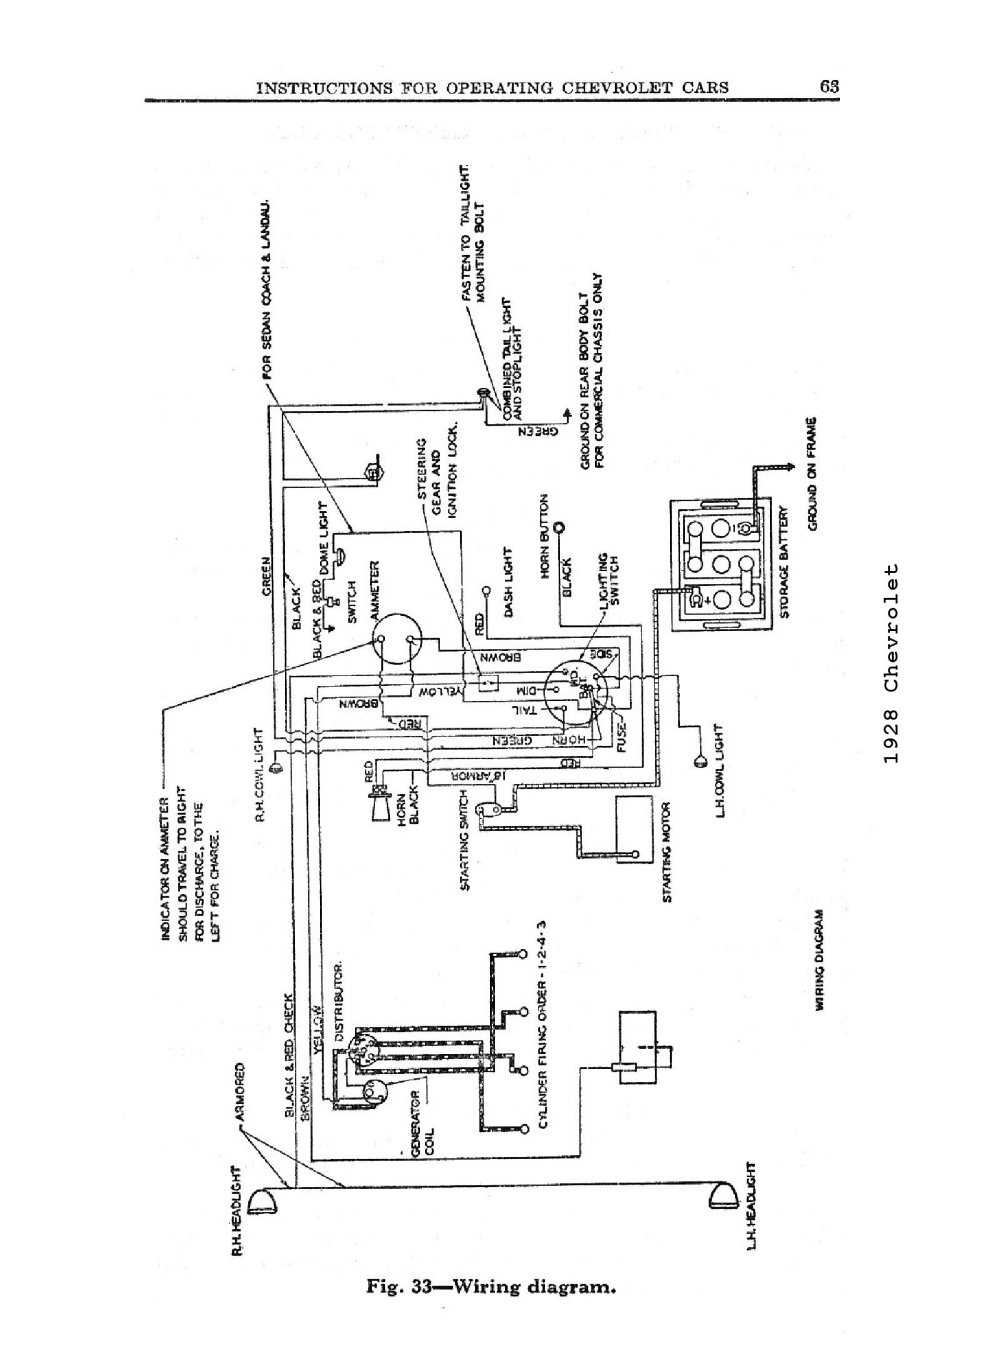 medium resolution of 1958 chevrolet steering column wiring wiring diagram row 1958 chevrolet steering column wiring